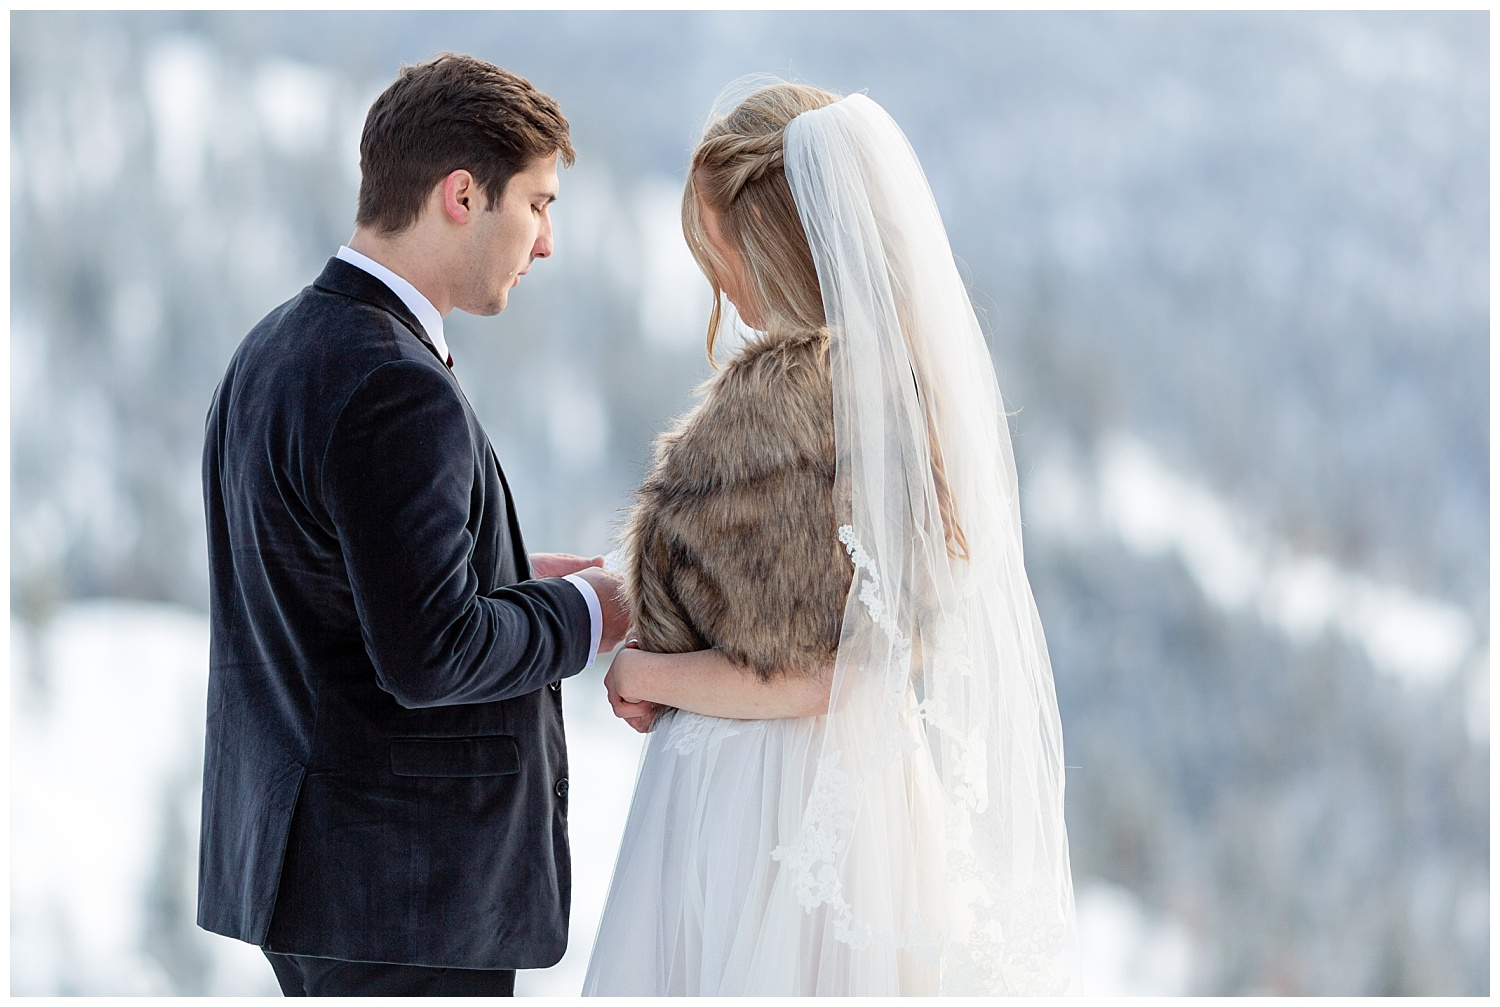 A groom reading his vows to his bride in Breckenridge, Colorado